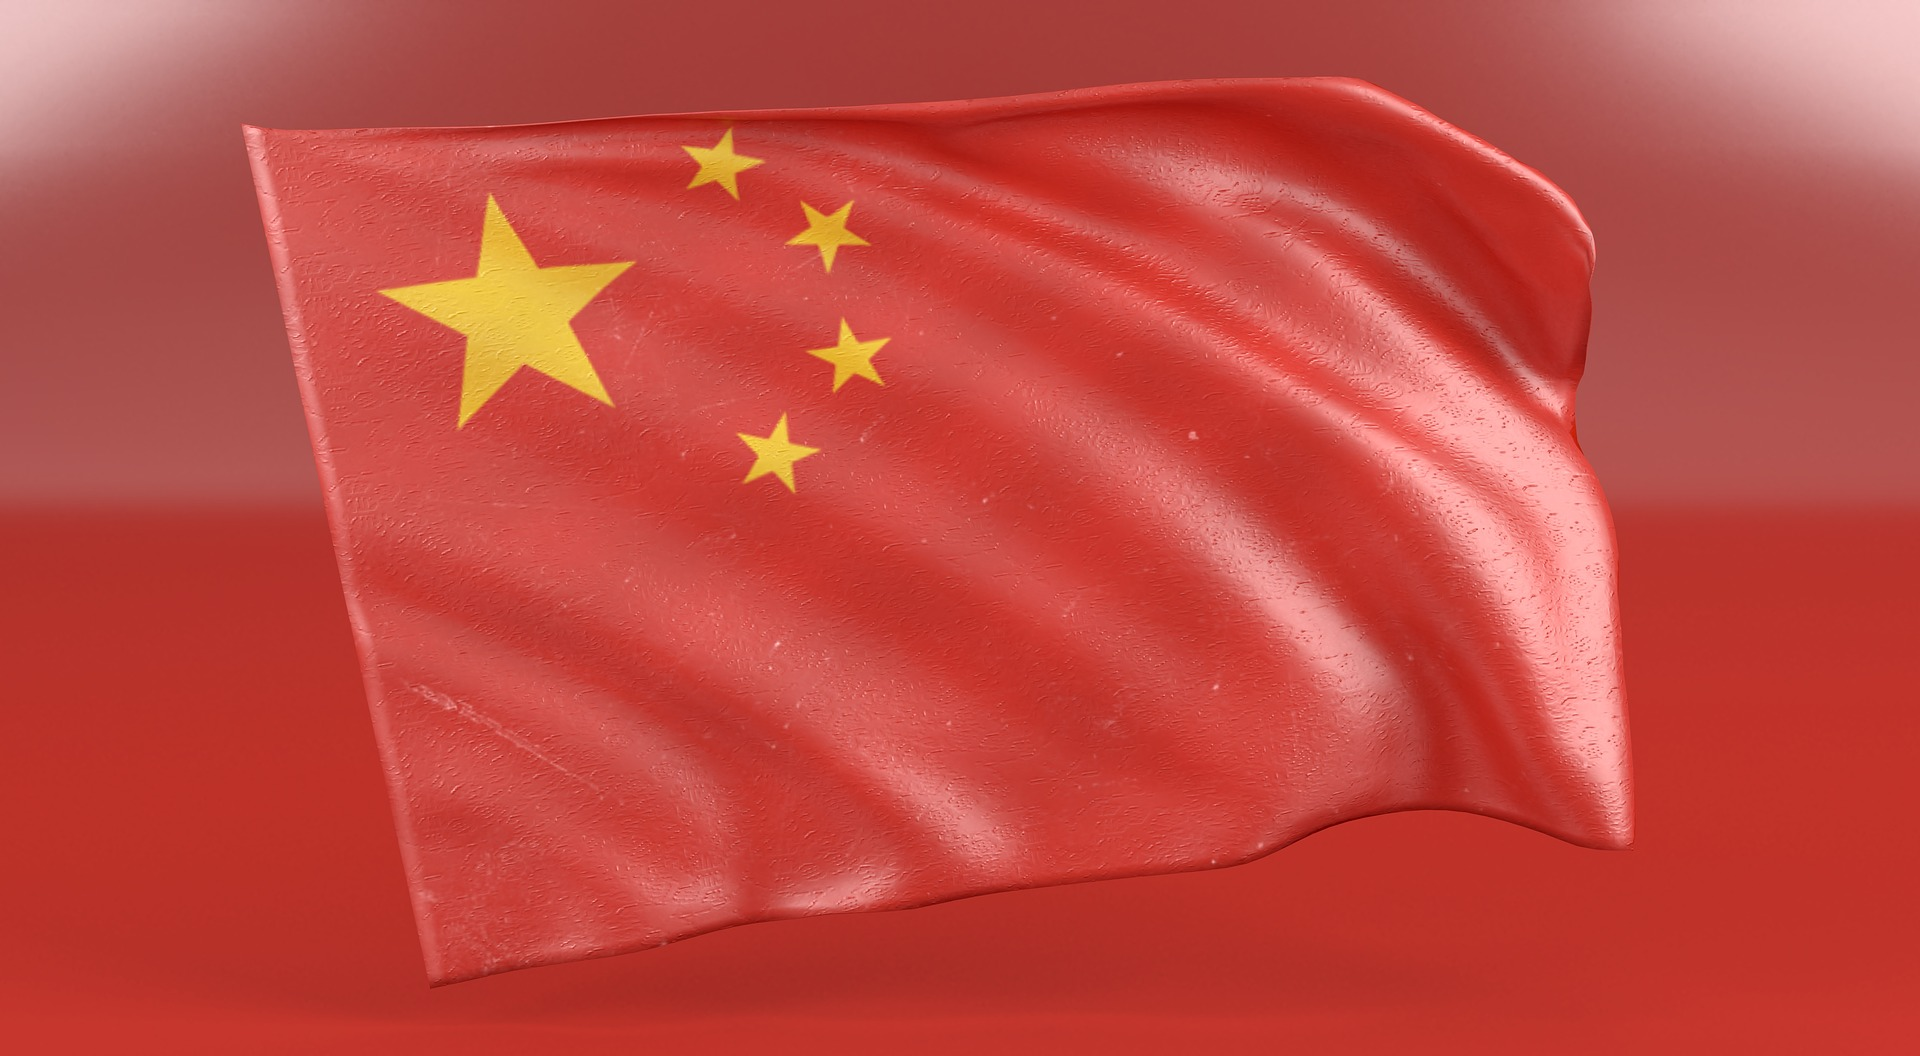 China's Digital Currency Electronic Payment Project has Launched the Biggest Digital Yuan Test